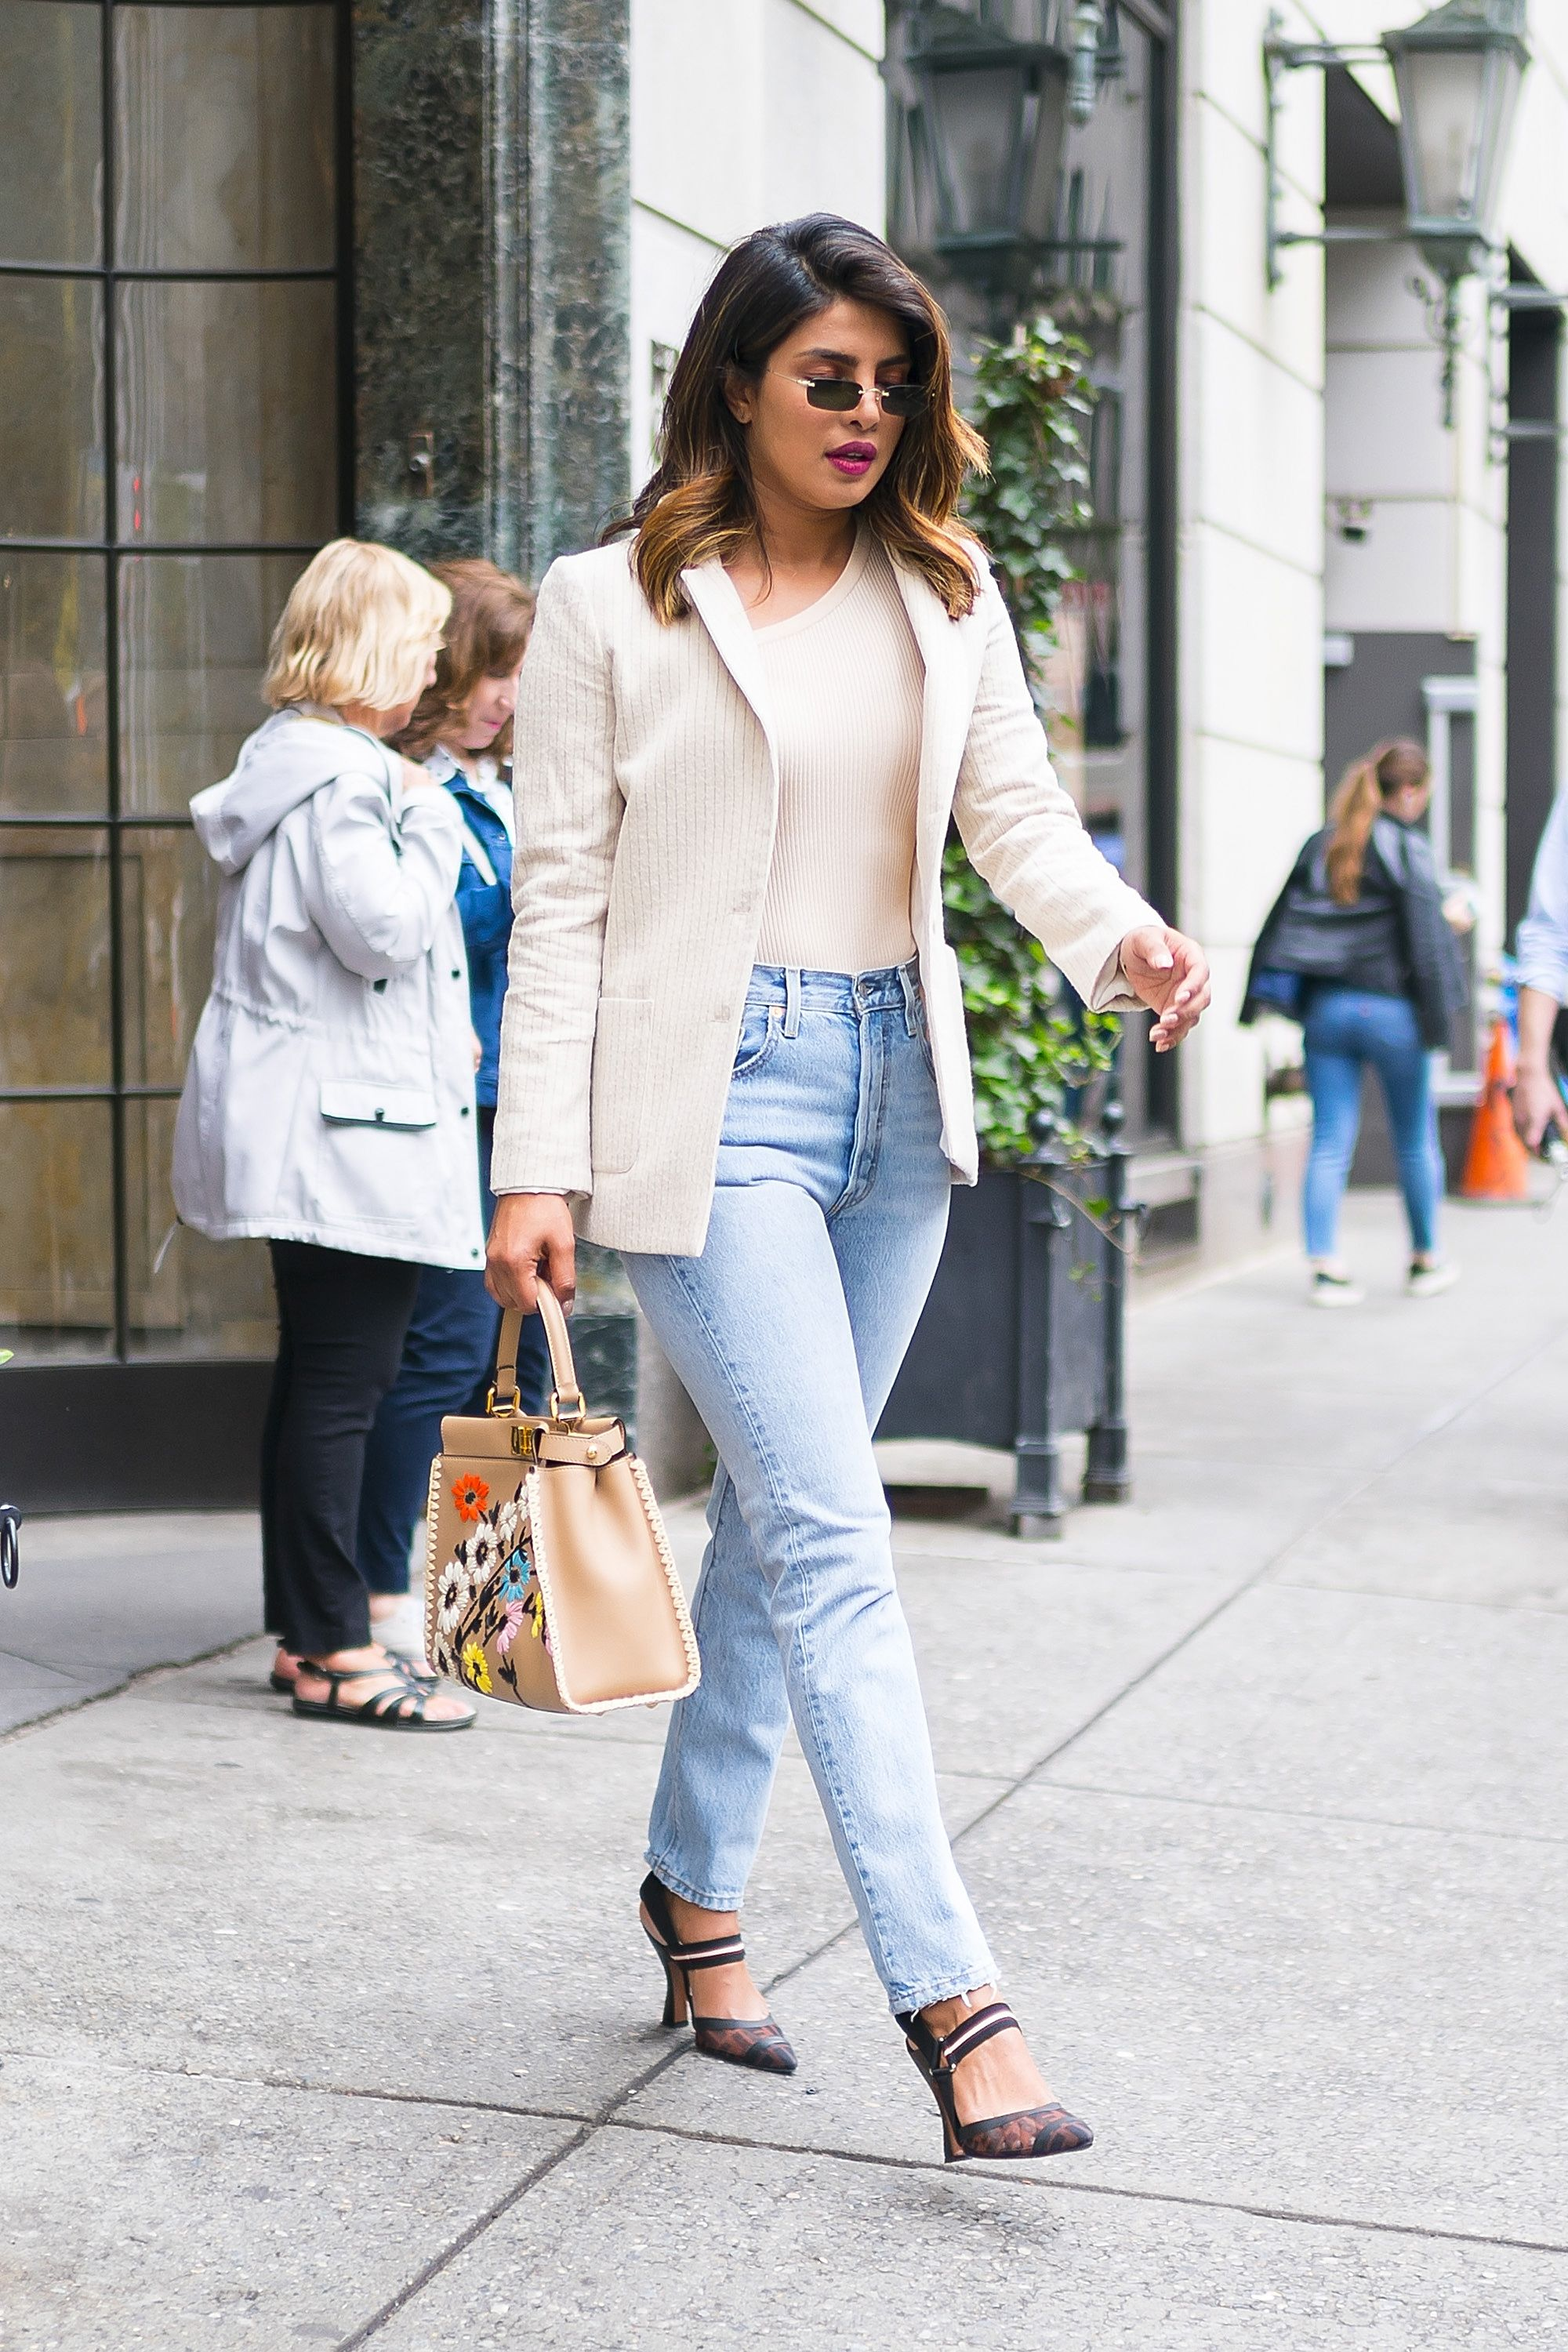 Priyanka Chopra After spending two days on your couch with Netflix, you're ready to rejoin the world a.k.a. your SO or friends for a day out. Stay comfortable with jeans and a plain top, but elevate your basics with pumps and a blazer.